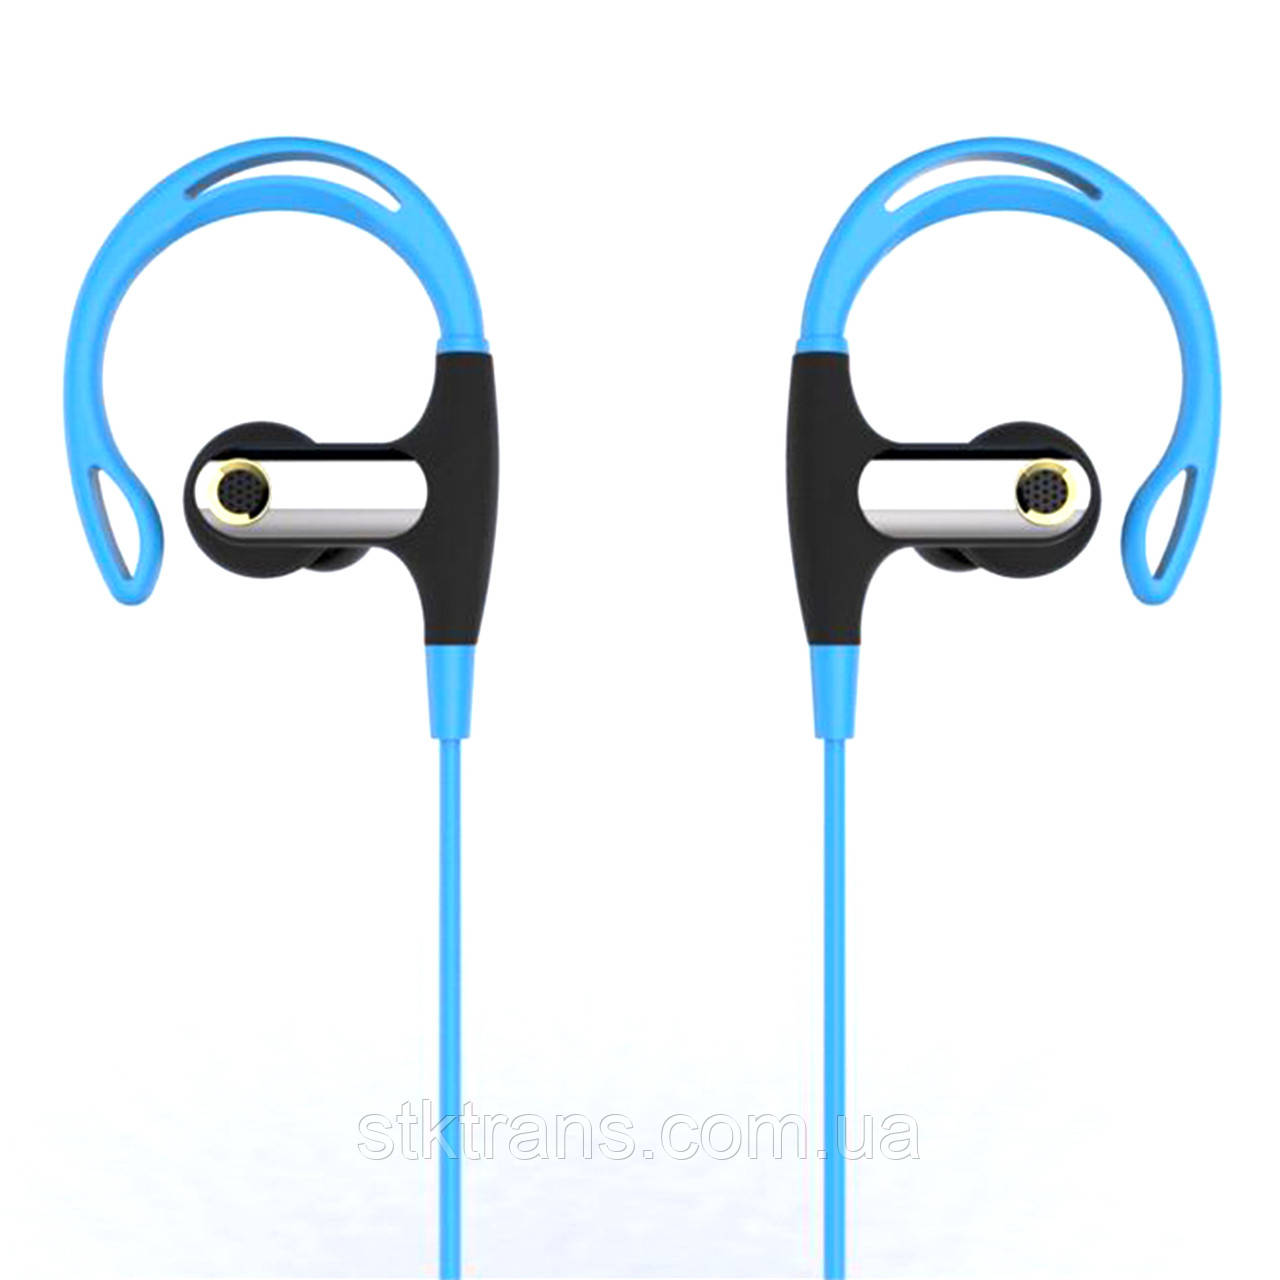 Беспроводные наушники Romix S2 Sport Wireless Headphone RWH S2 Blue-Black